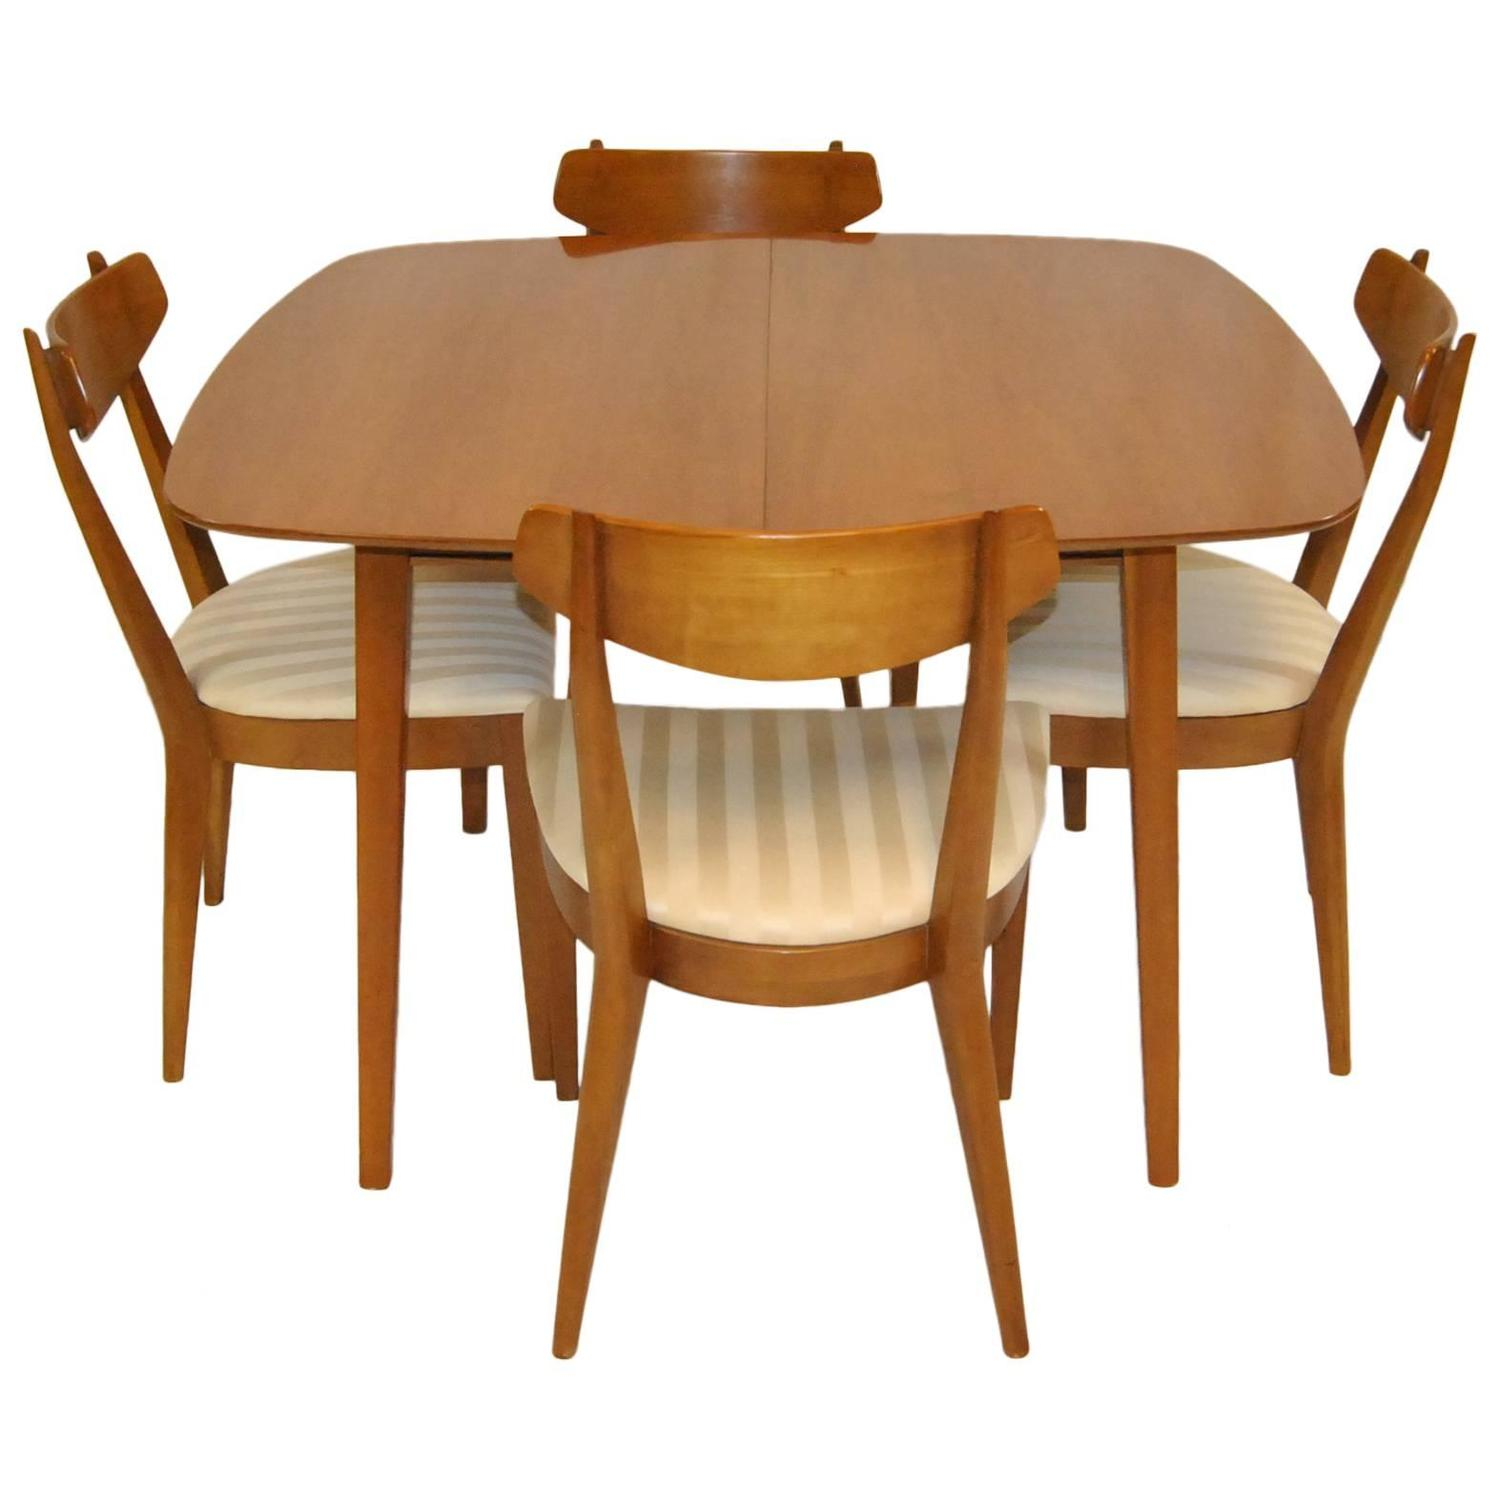 Merveilleux Mid Century Modern Dining Set By Kipp Stewart For Drexel, Sun Coast  Collection At 1stdibs